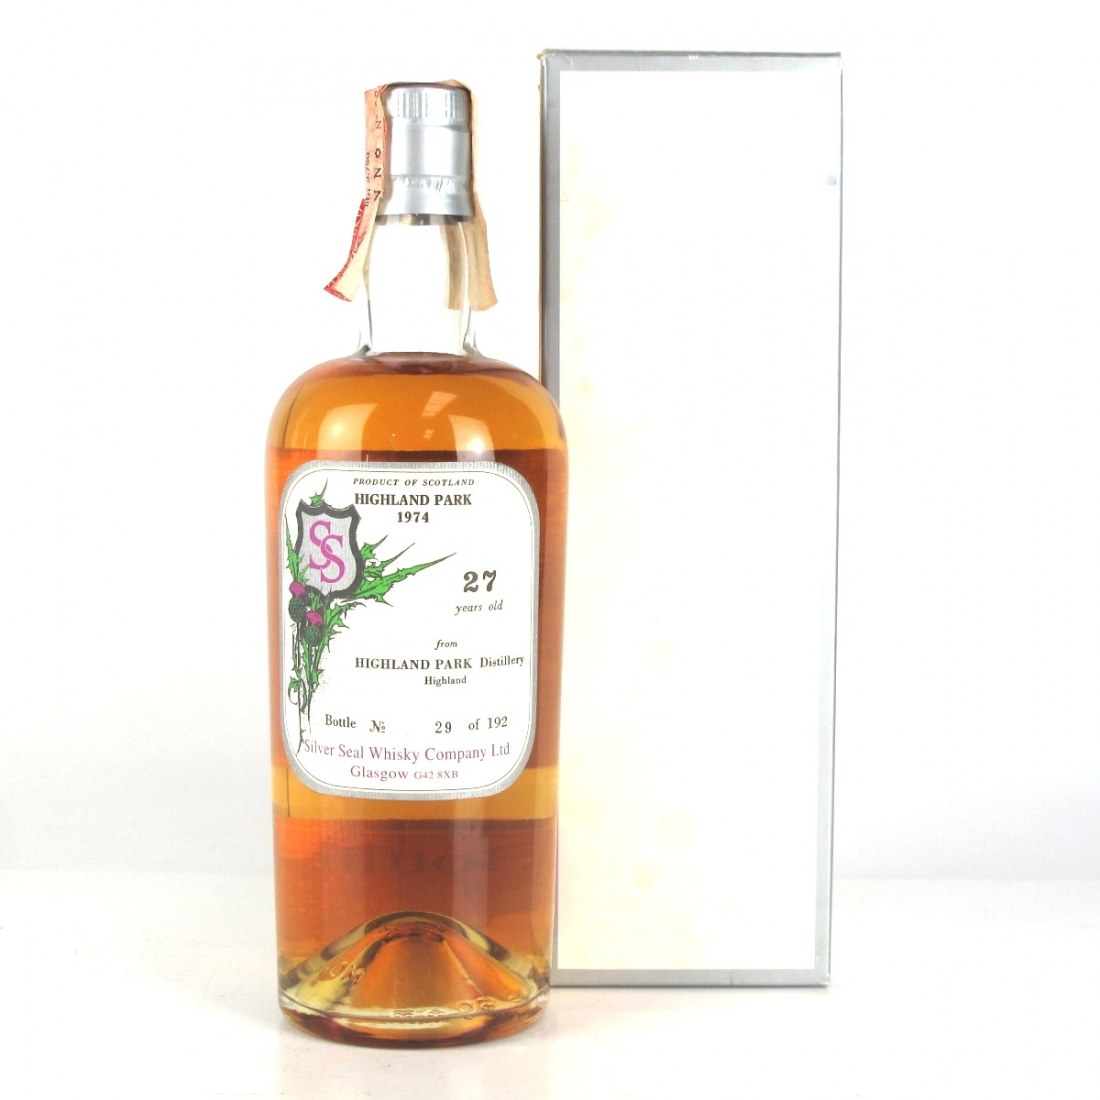 Highland Park 1974 Silver Seal 27 Year Old / First Bottling